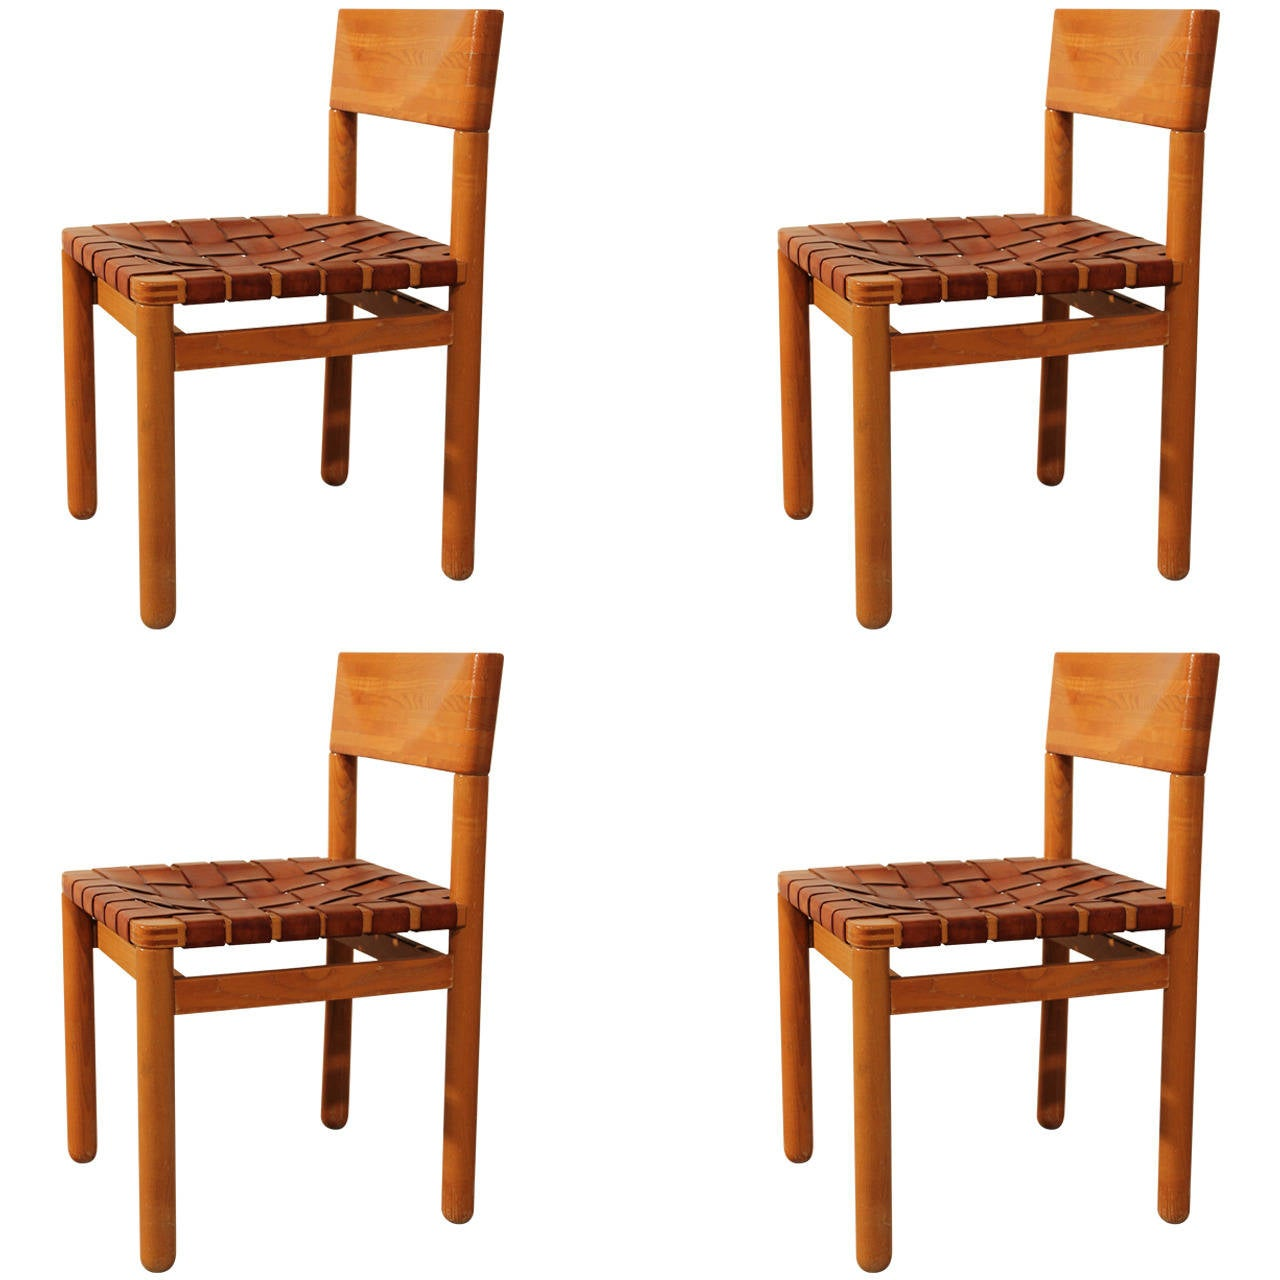 Four dining chairs in pine wood with leather seat for Wood dining chairs with leather seats